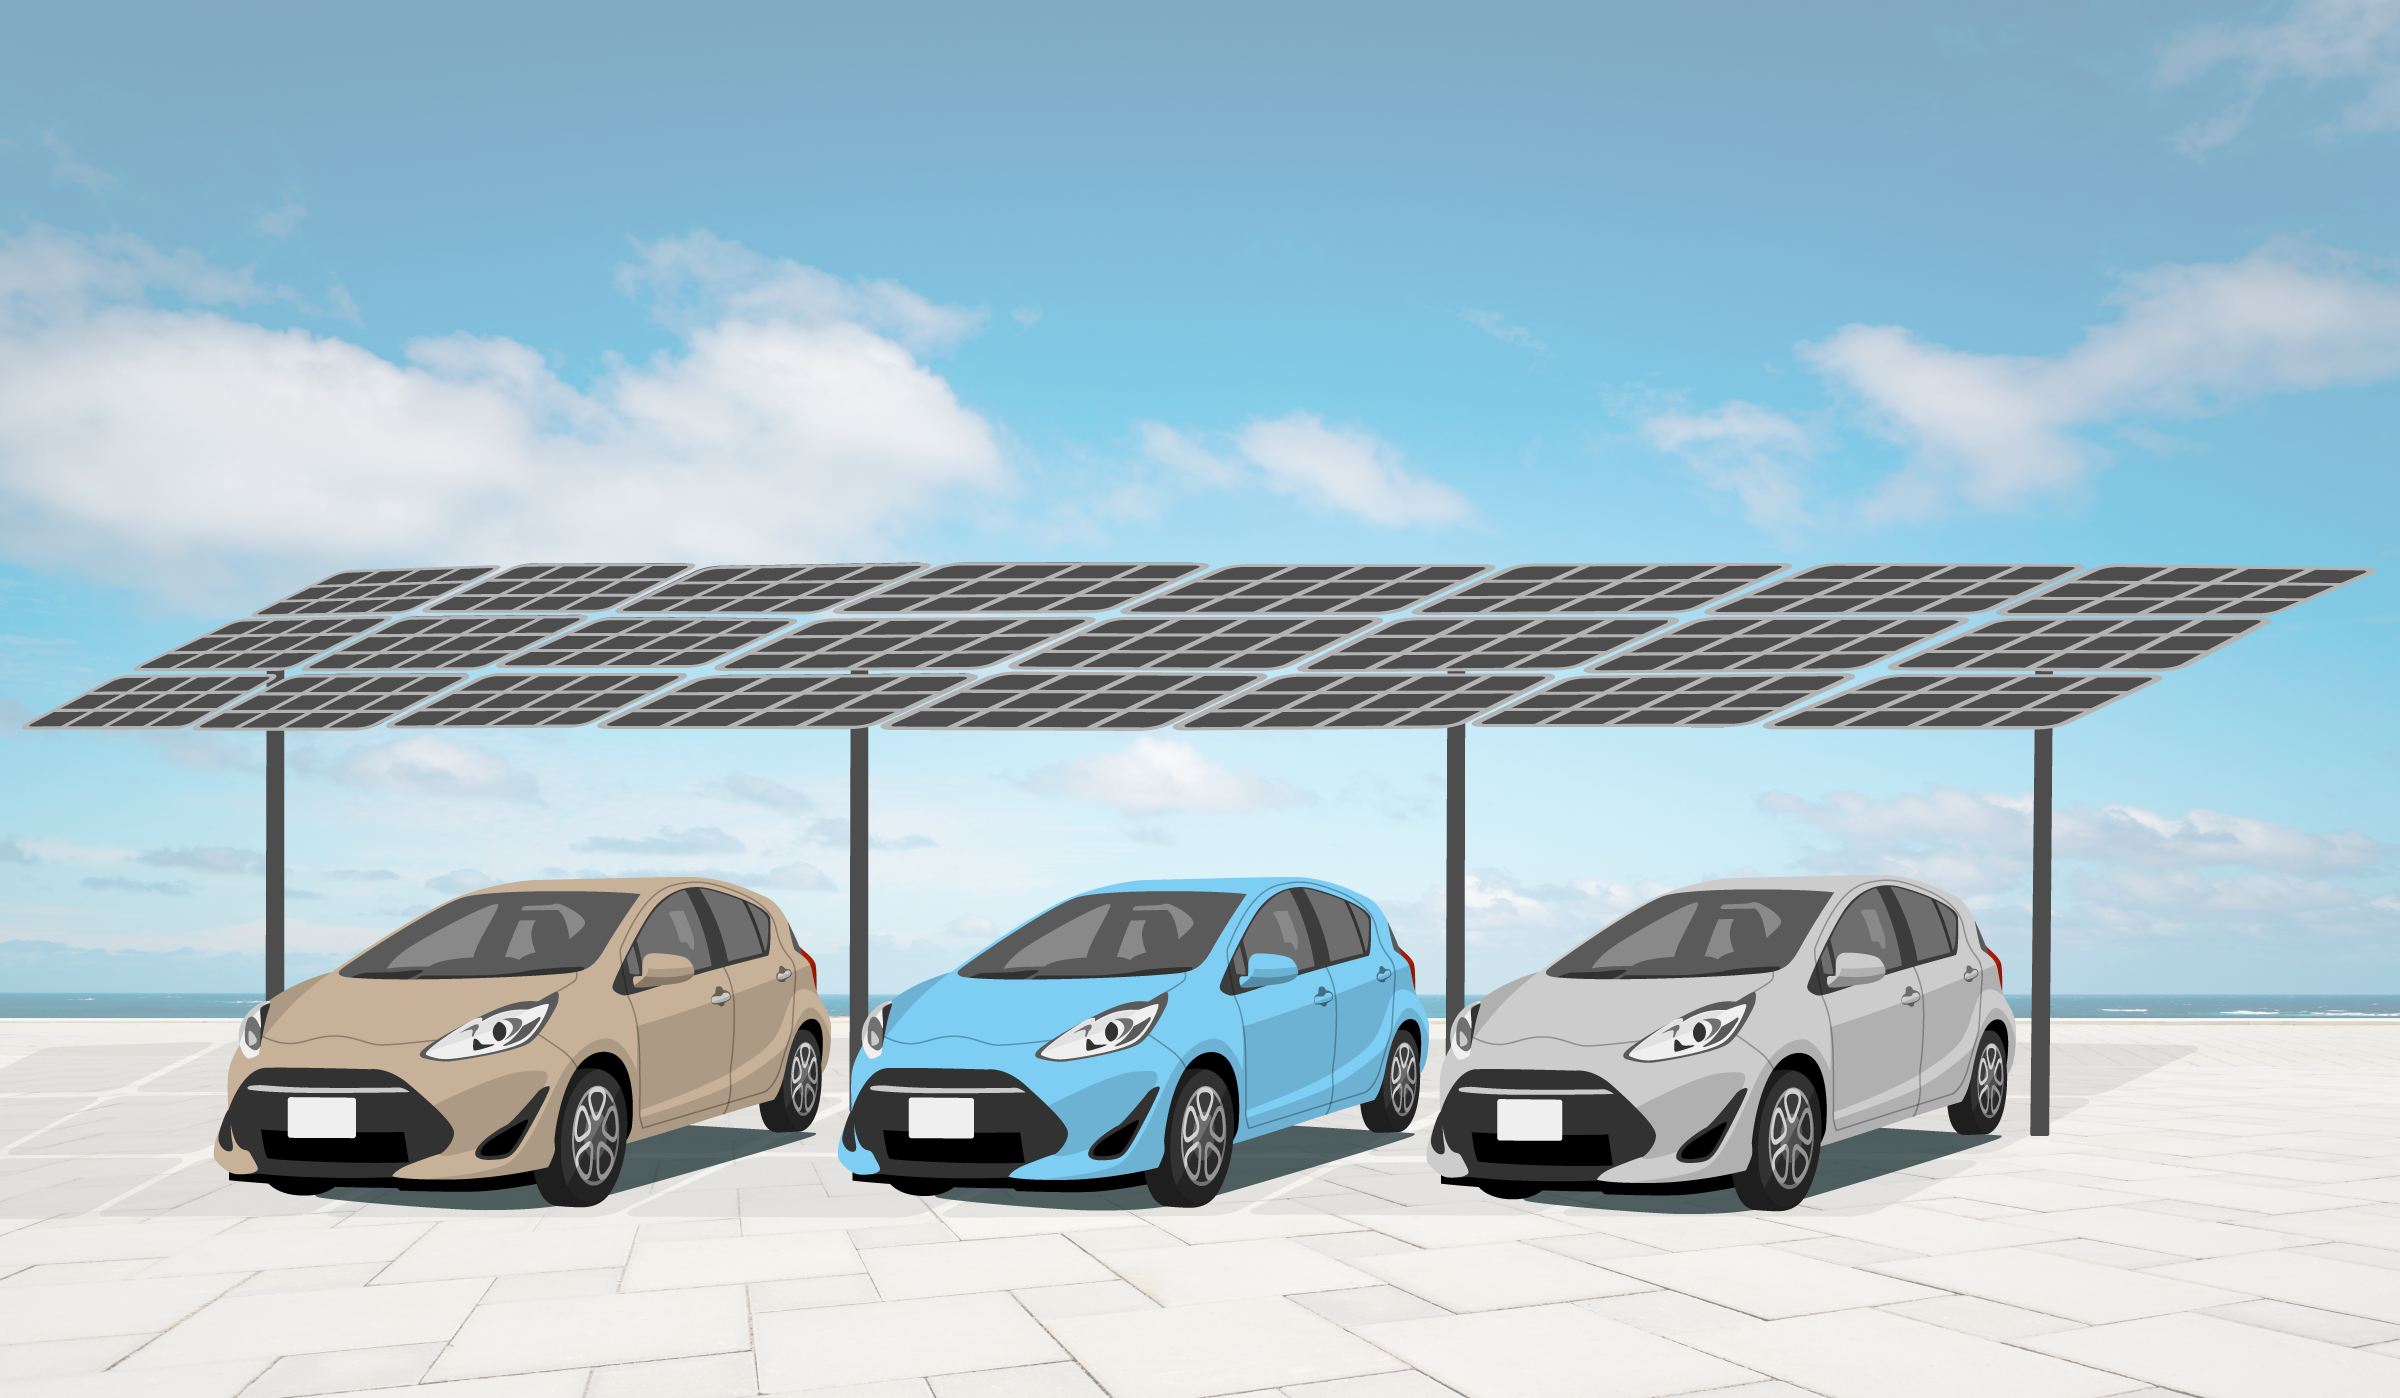 solar-carport-3x8-panels-with-cars.png